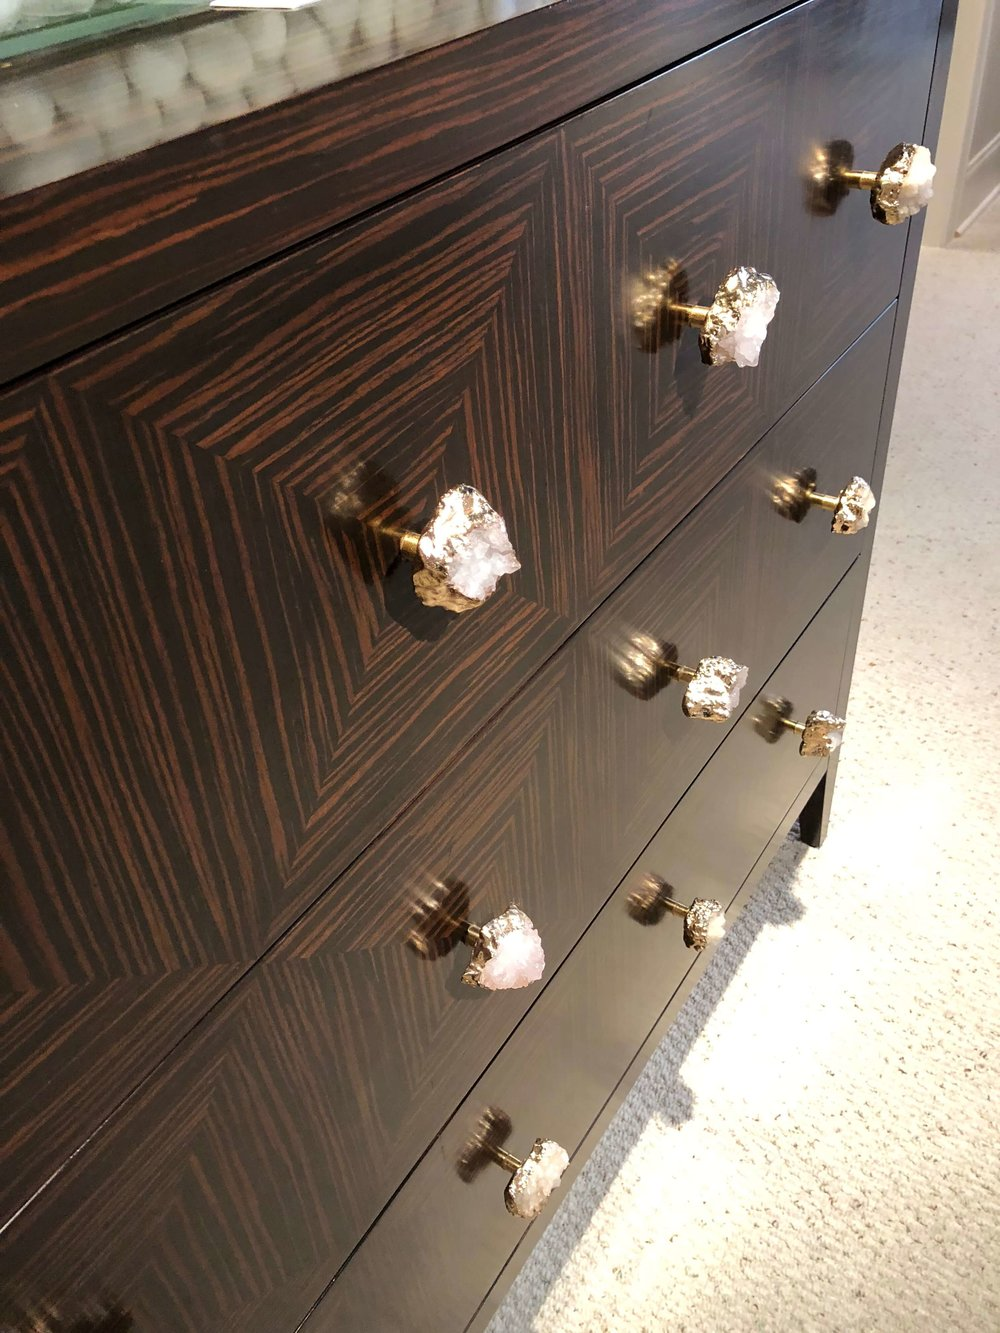 Dark wood console with quartz cabinet pulls - both brown wood and mineral trend all in one! From John-Richard.